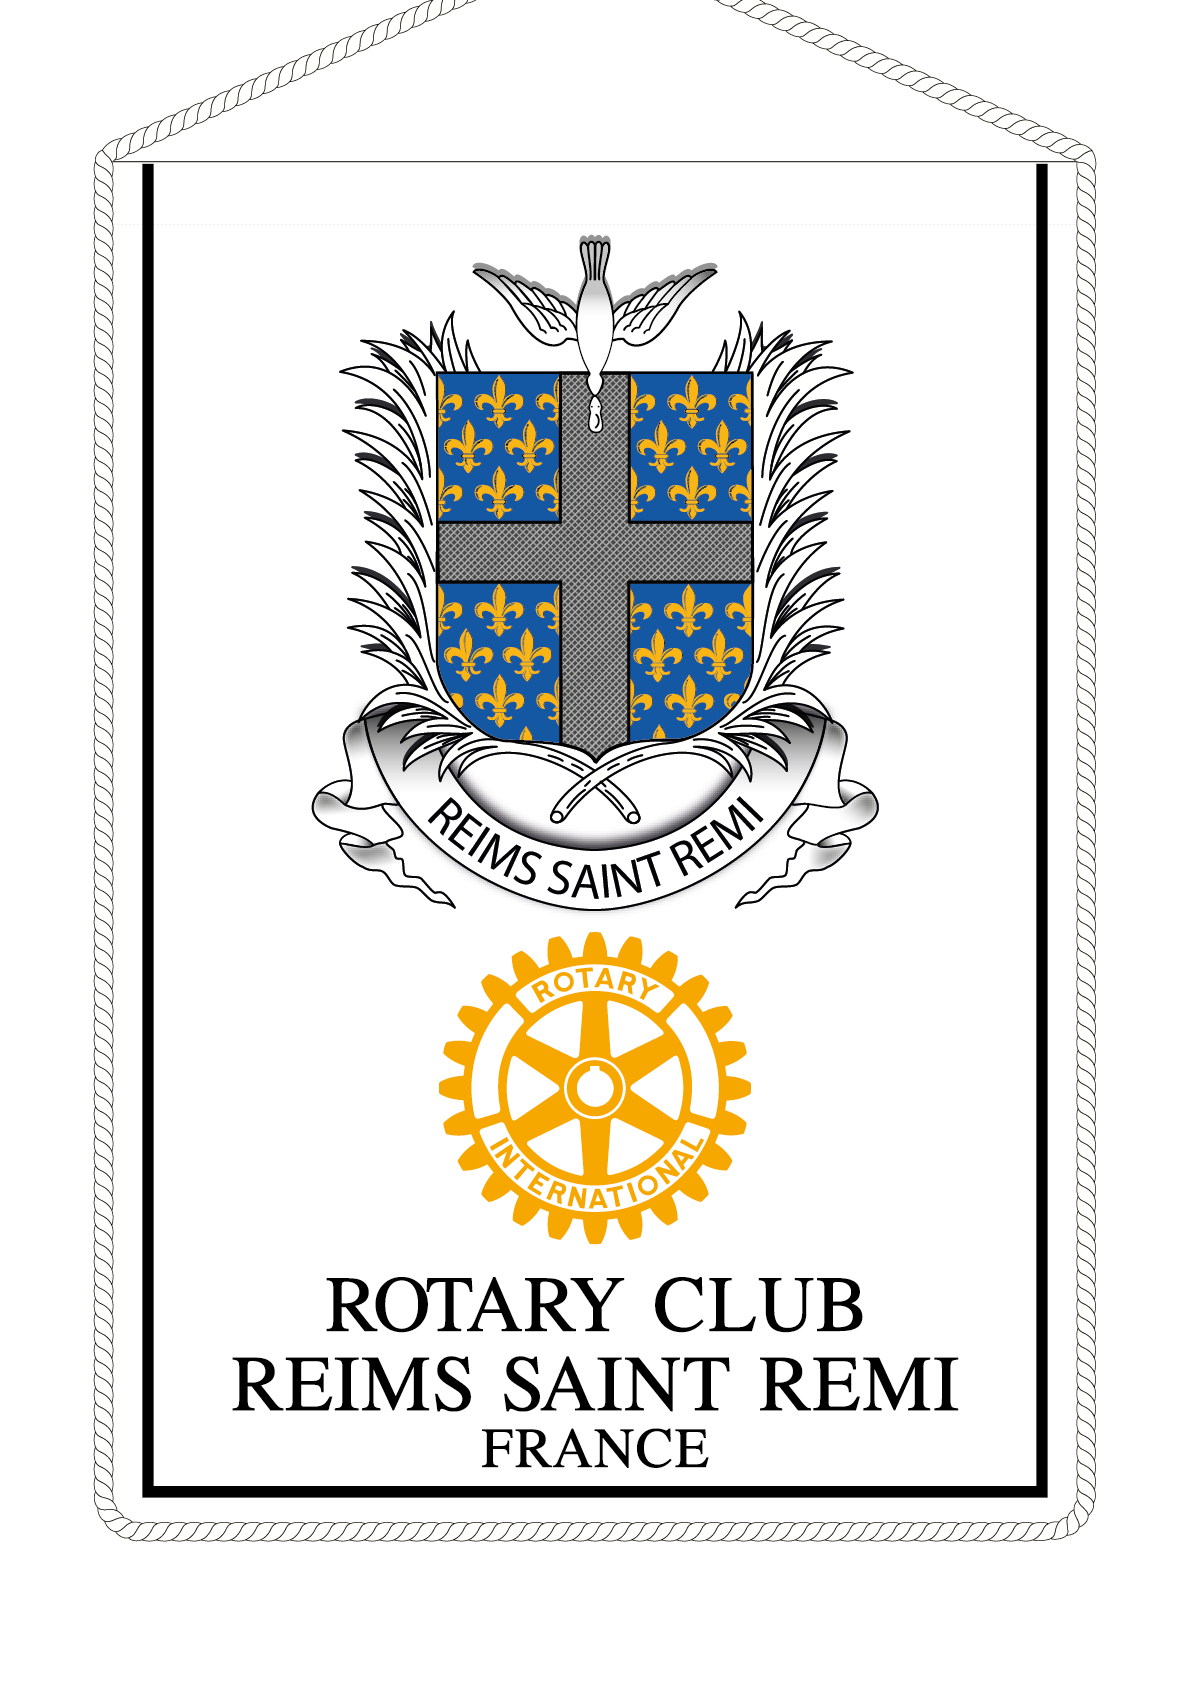 FANION ROTARY CLUB REIMS SAINT REMI